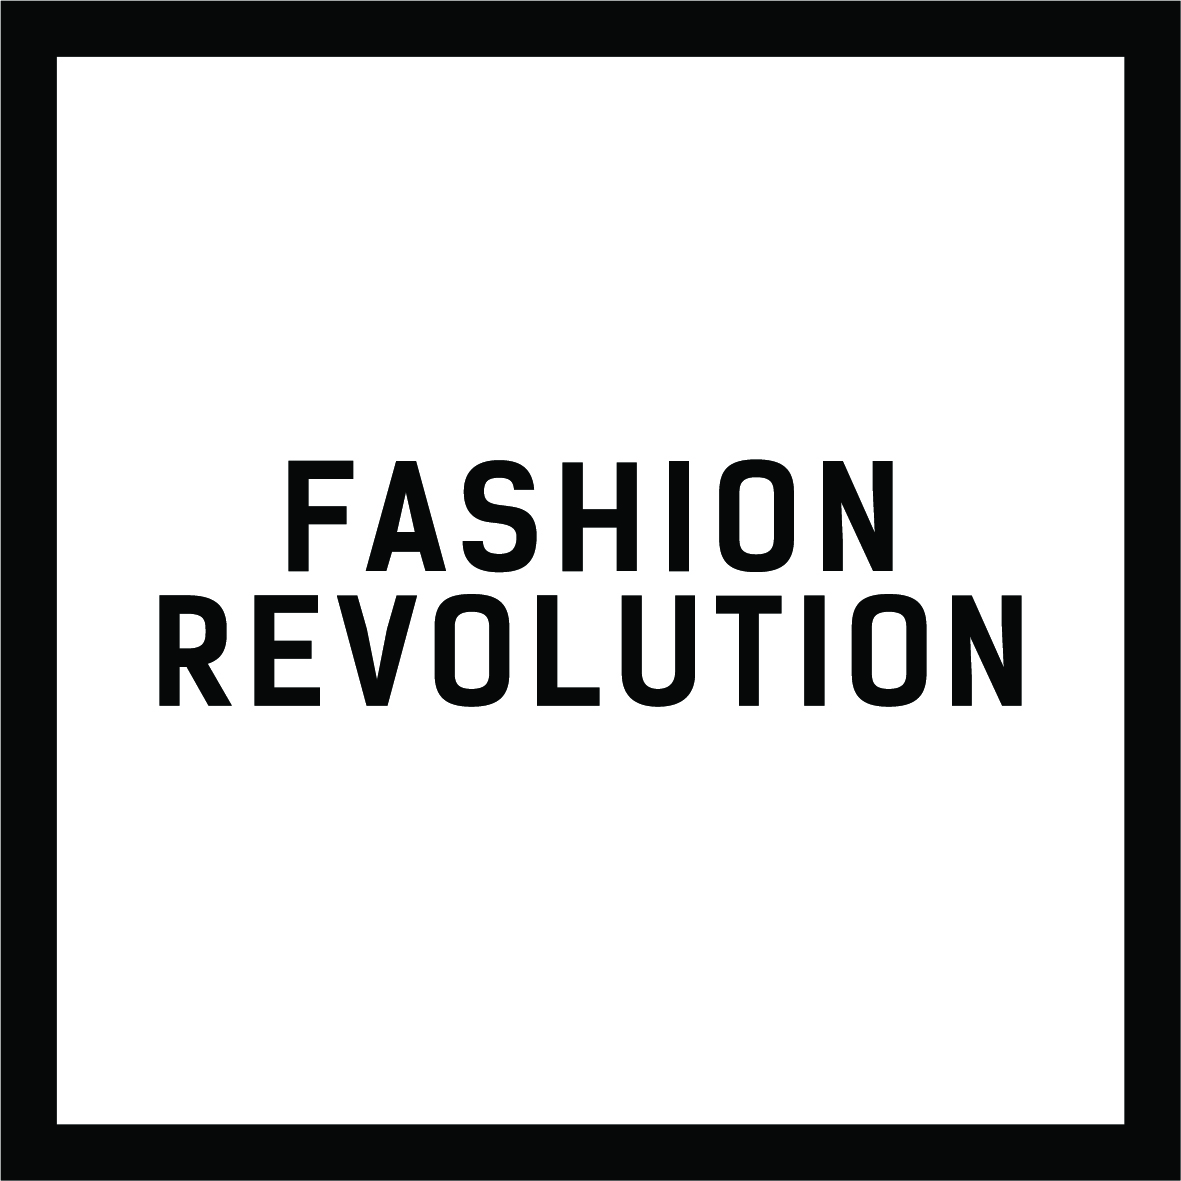 Following the collapse of Rana Plaza in Bangladesh, this UK NGO has started a fashion revolution to stop fast, unethical fashion by asking the very simple question #whomademyclothes?